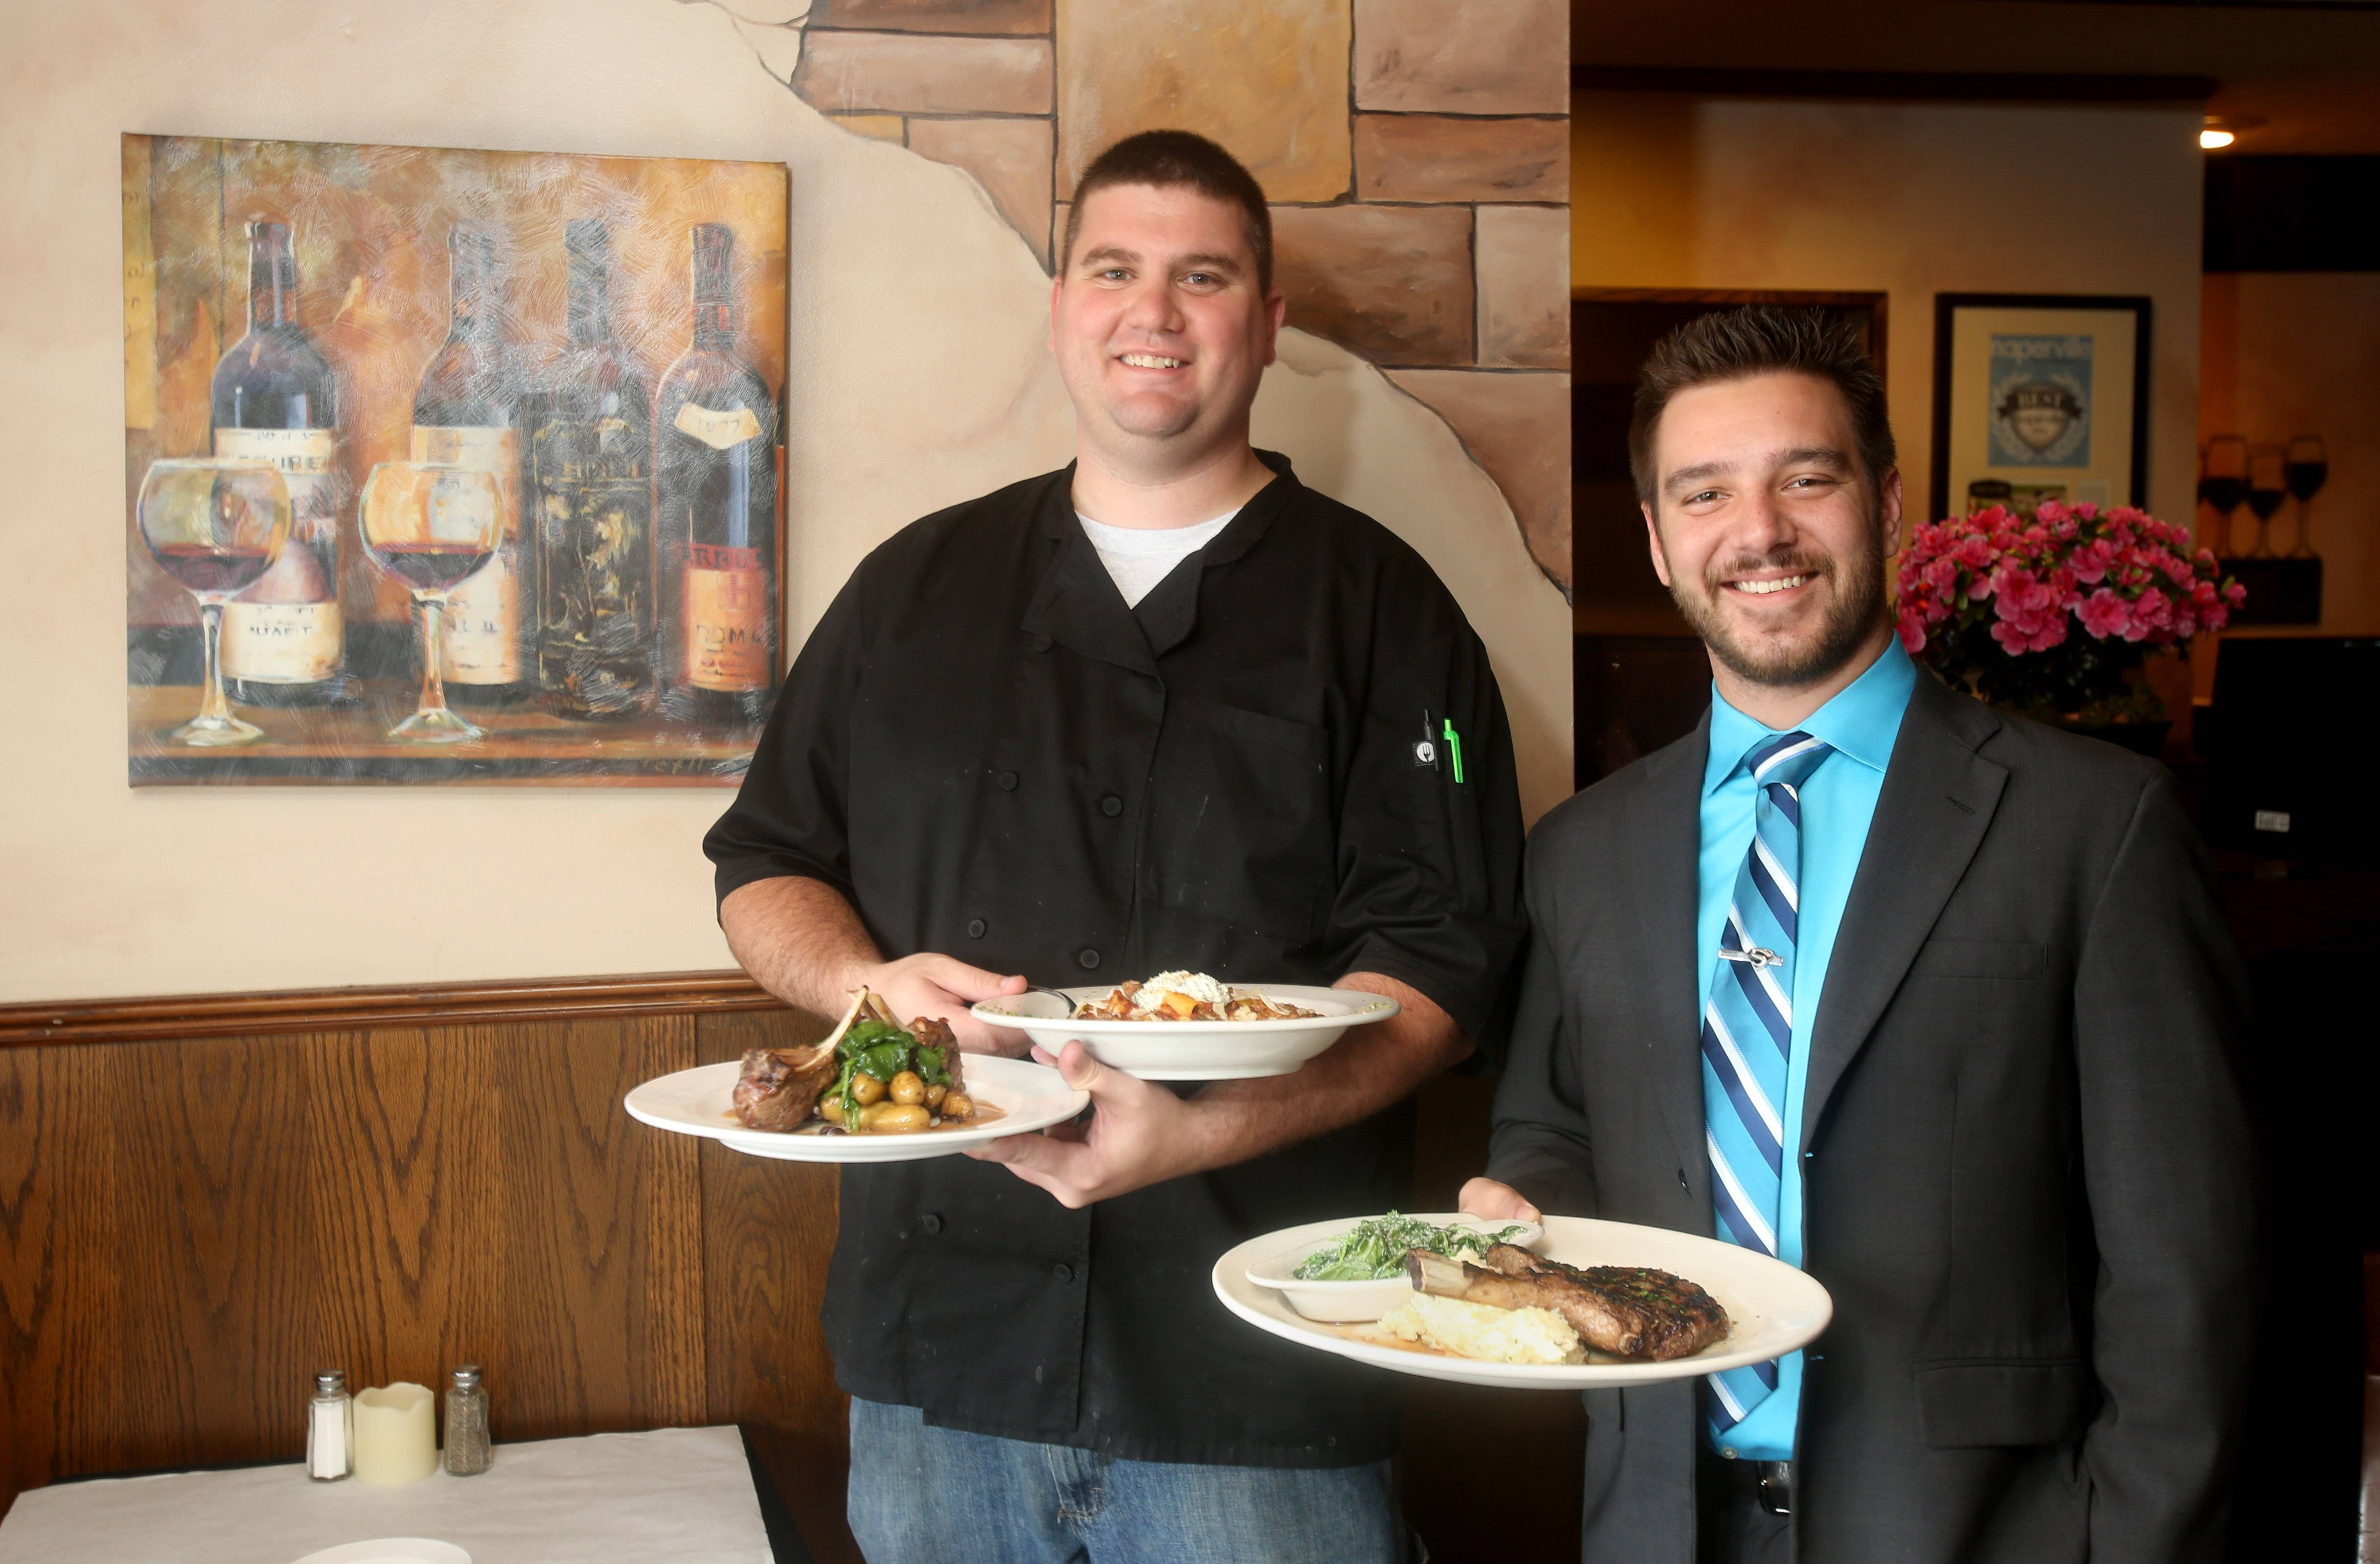 Chef Ryan Gramit, left, and owner Bryan Werschulz, took over Walker's Charhouse on Gartner Road in Naperville earlier this year.